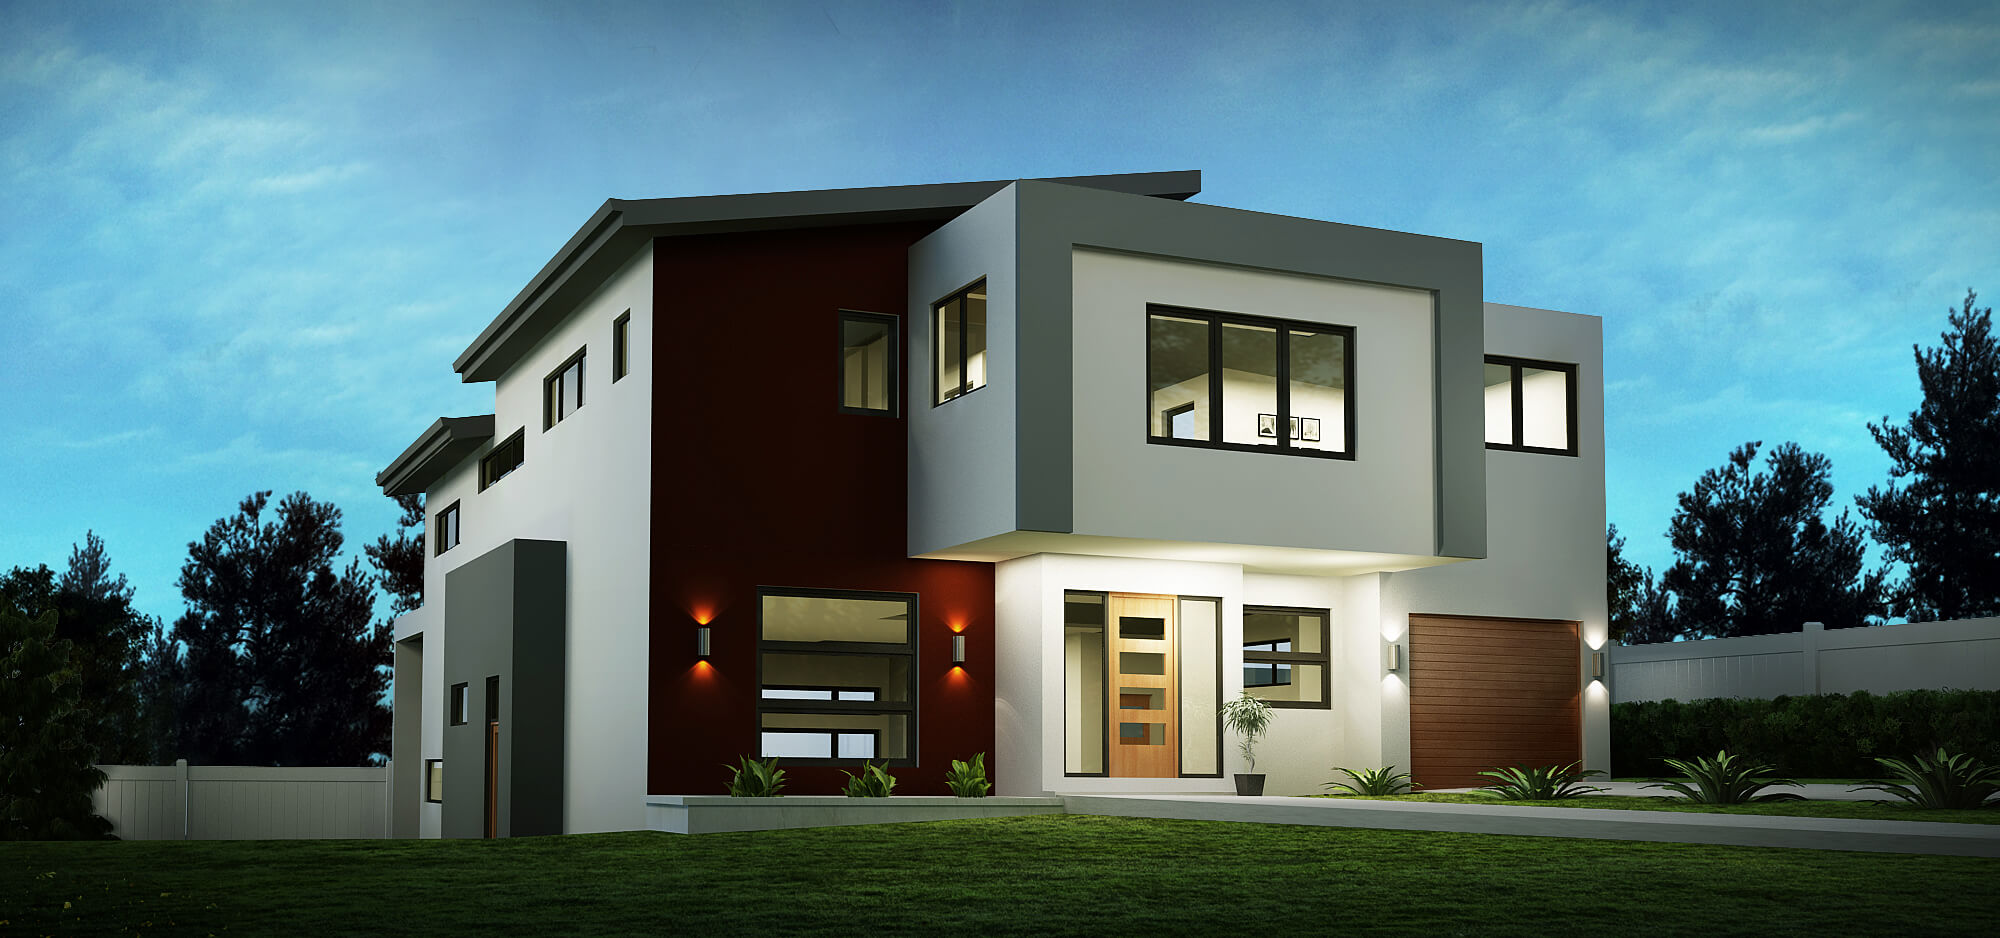 The Sloping Block Building Construction A Design That Meets The Need A Very Cozy Home